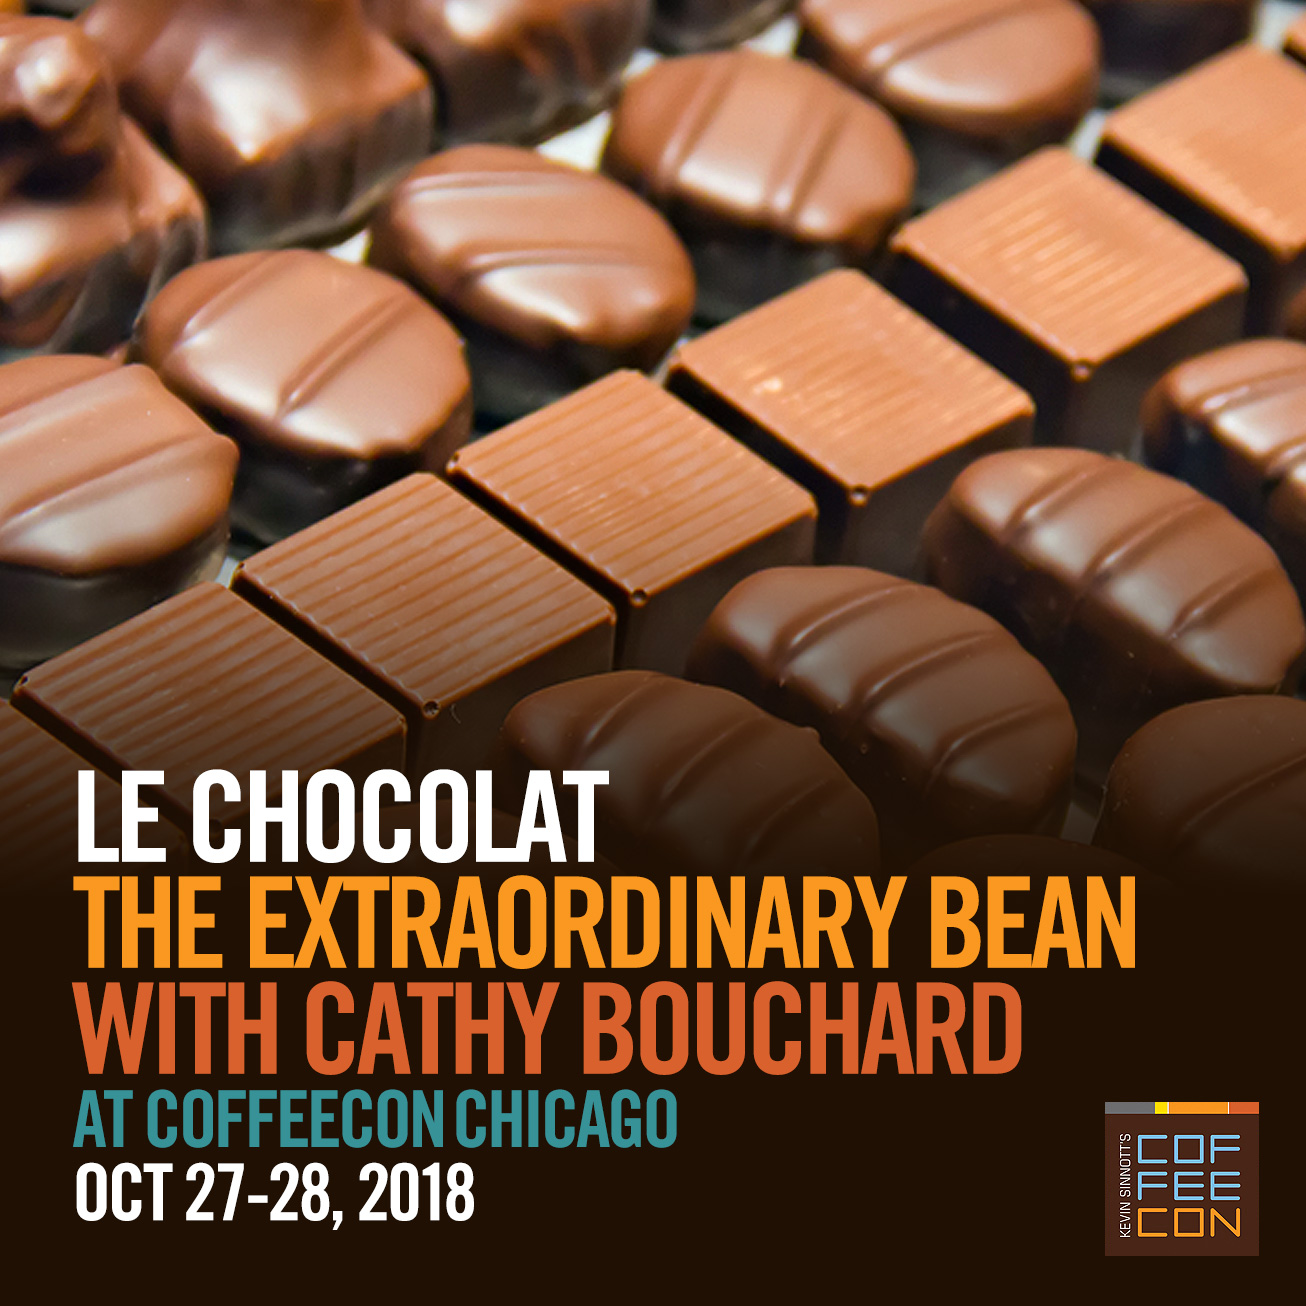 Le Chocolat with Cathy Bouchard at CoffeeConChi 2018